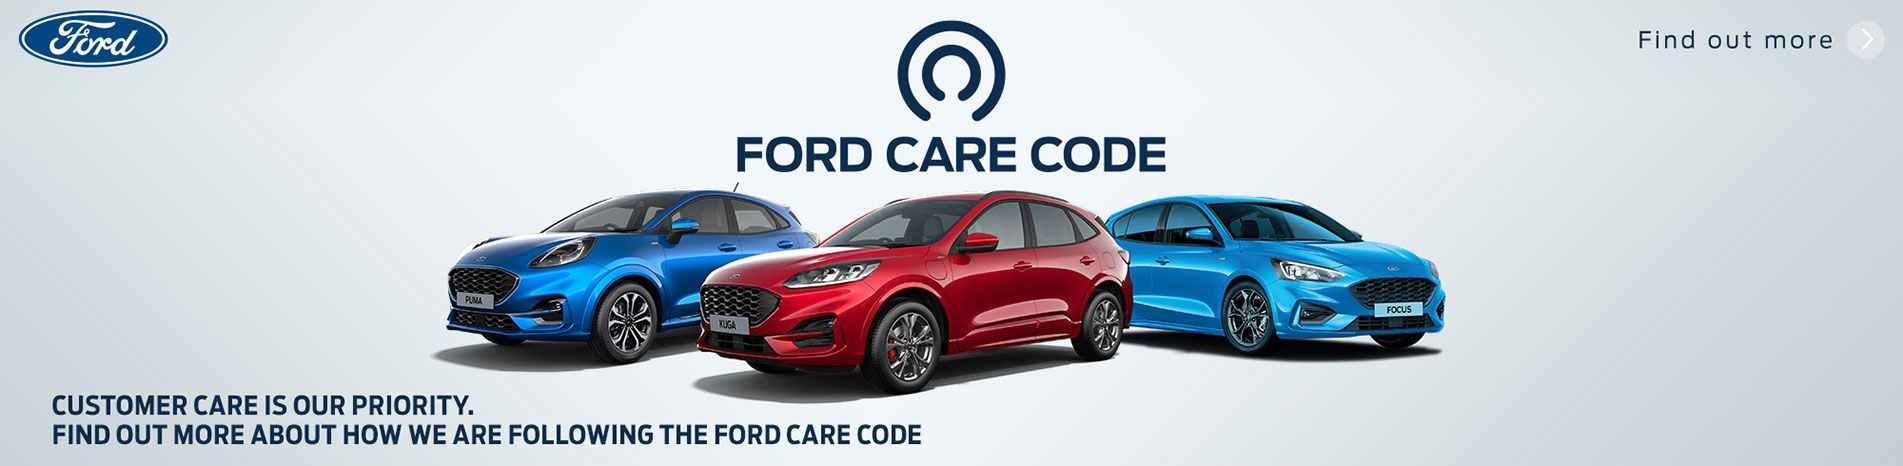 Ford Care Code at Glenford